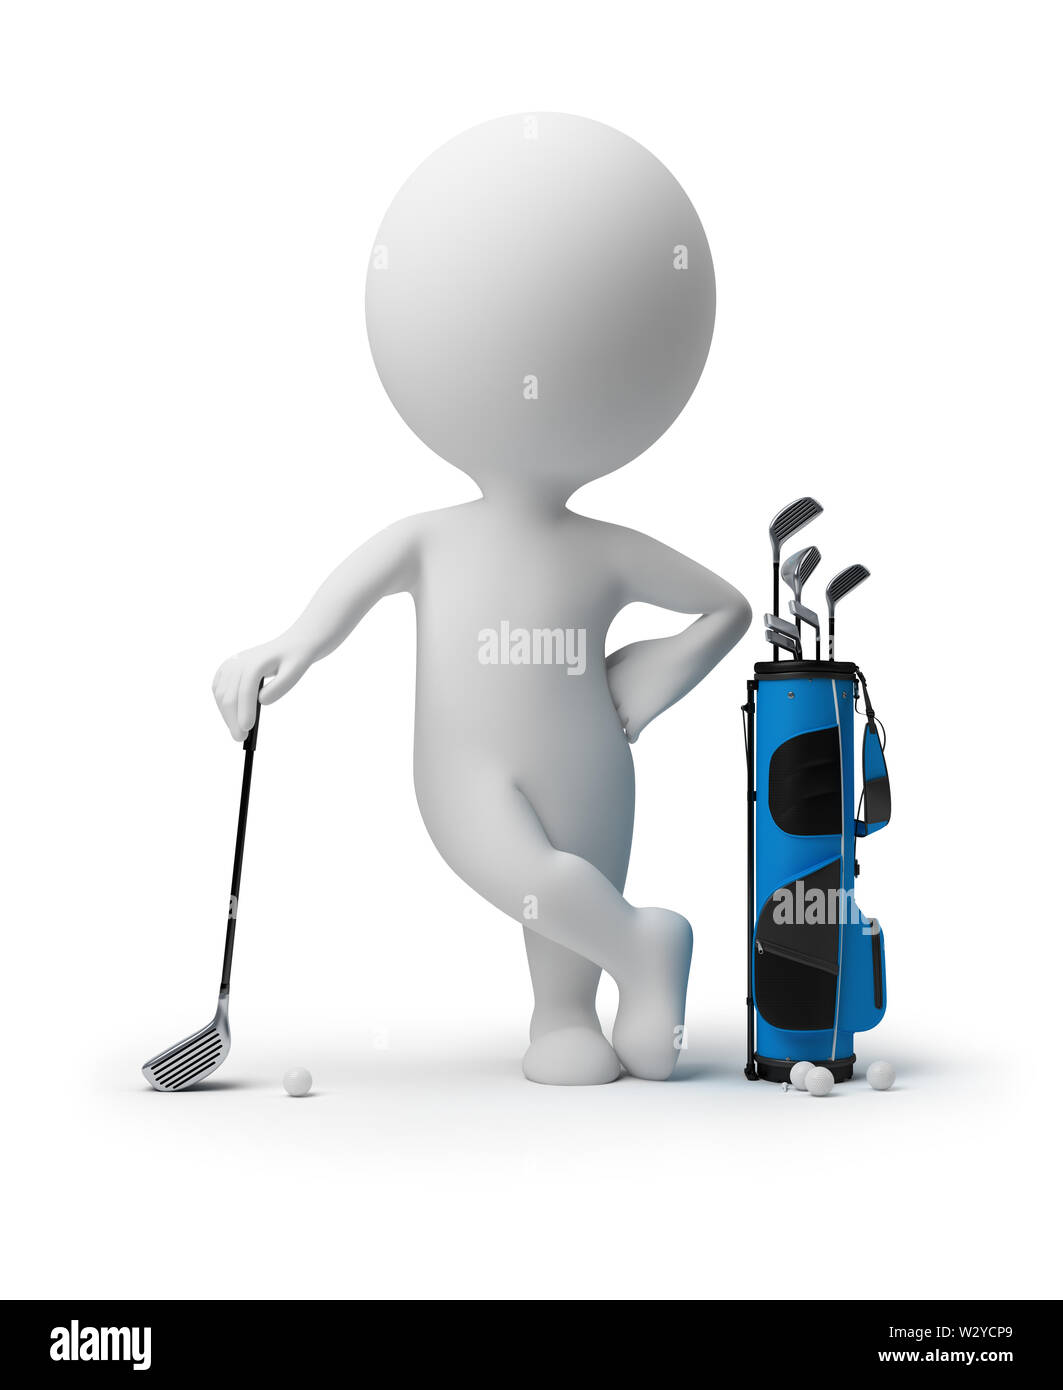 3d small person leant the elbows on a stick for a golf near to a bag for sticks. 3d image. Isolated white background. - Stock Image